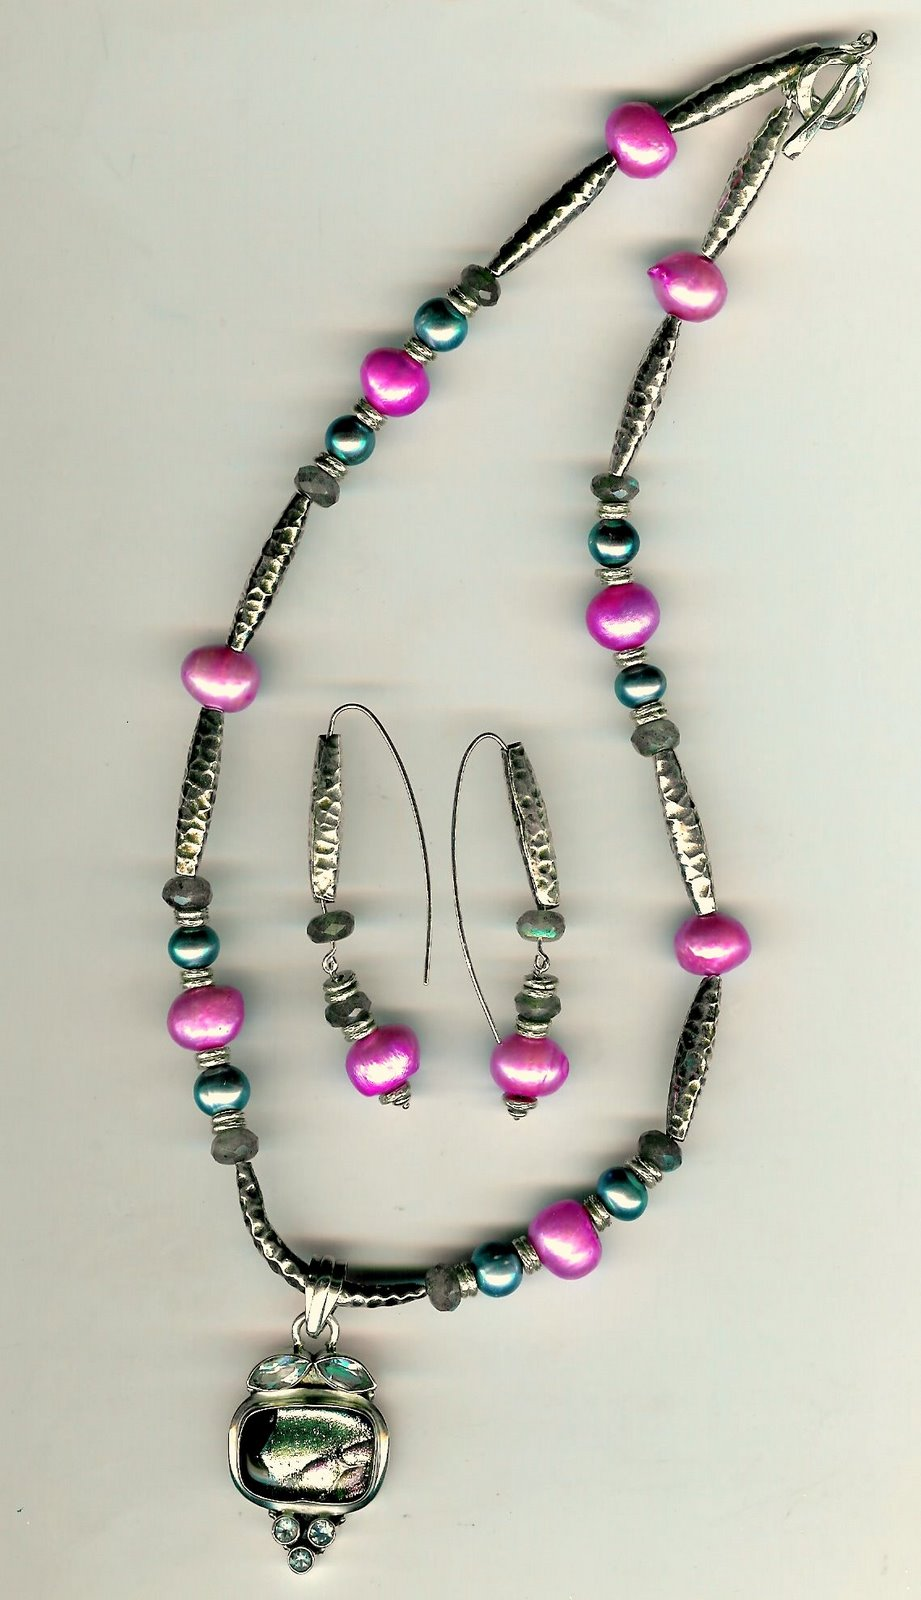 117. Dichroic Glass Pendant, Freshwater Pearls with Karen Hill Thai Sterling Silver + Earrings